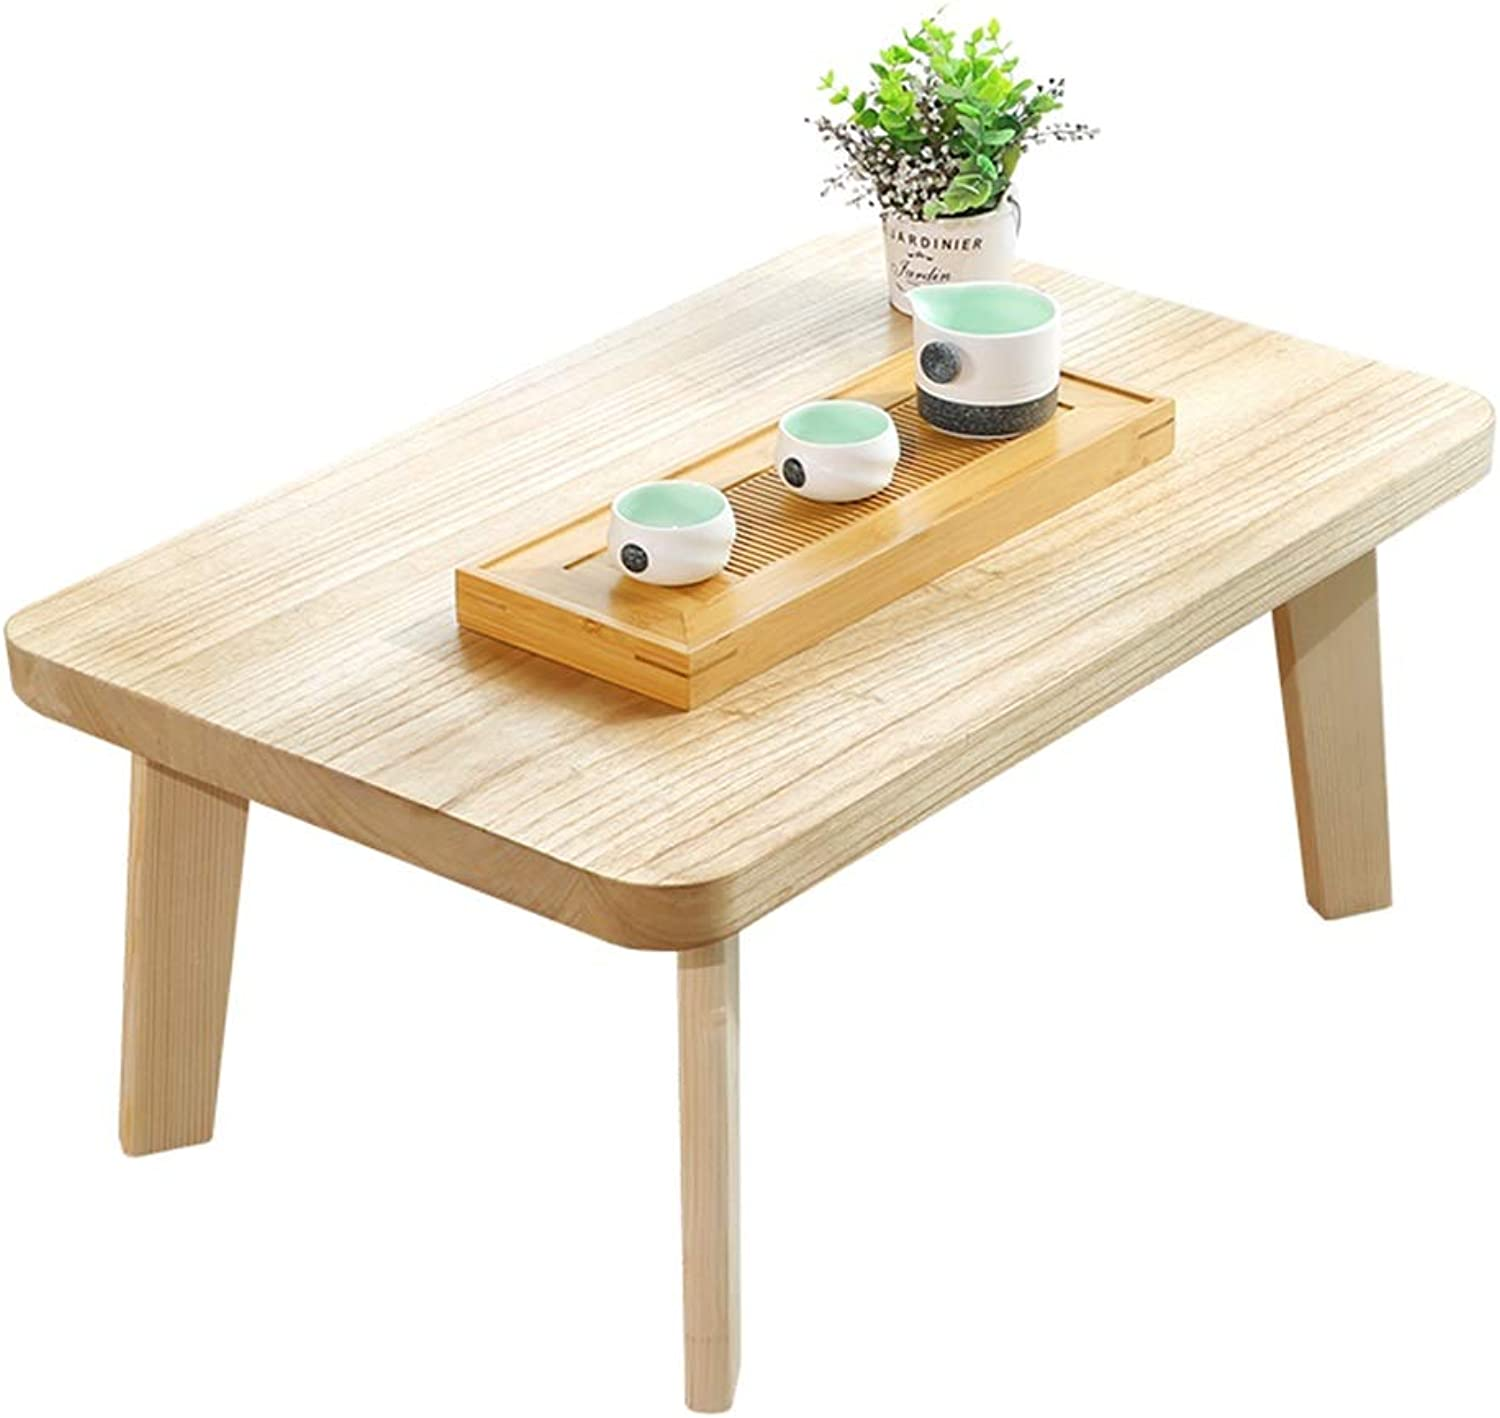 Coffee Tables Small Table Coffee Table Paulownia Wood Side Table Simple Low Table Lazy Computer Table Tatami Platform Solid Wood Table Multi-size Solid Wood Table ( color   Beige , Size   503030cm )